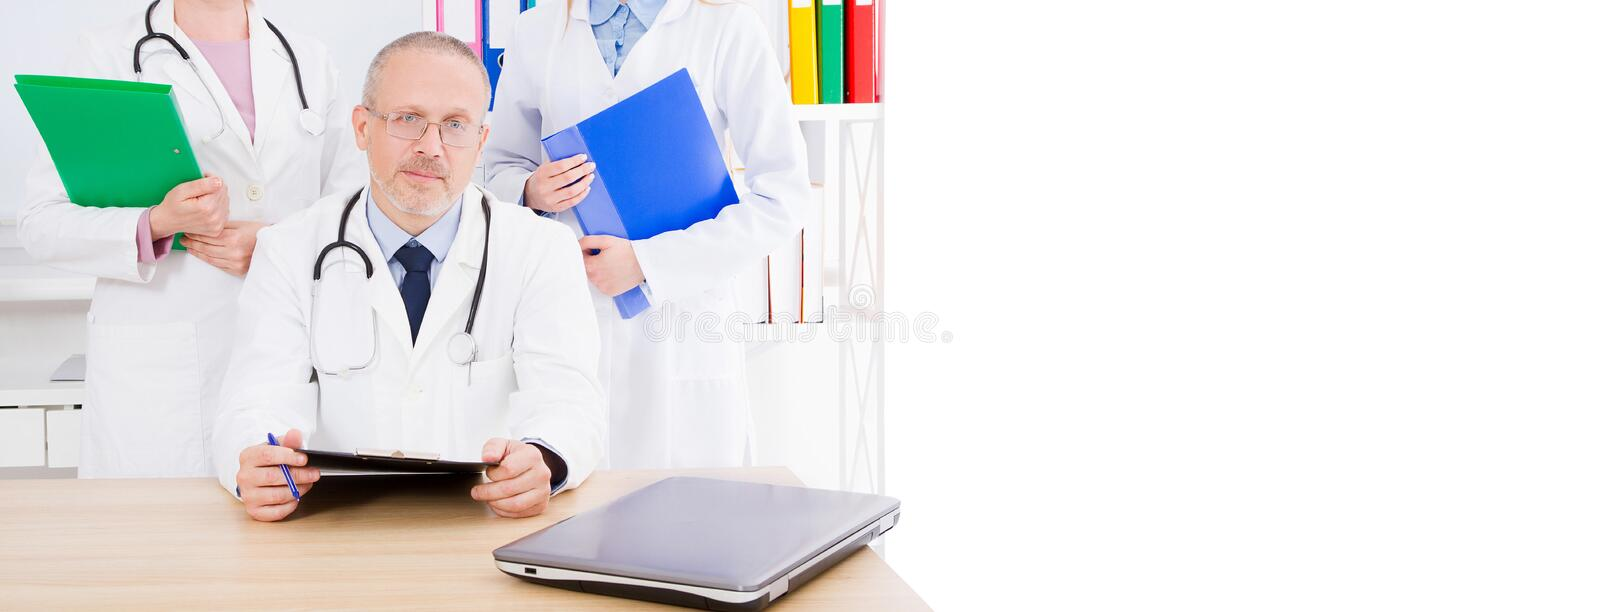 Three doctors posing in the clinik medical office,copy space,billboard or banner royalty free stock images